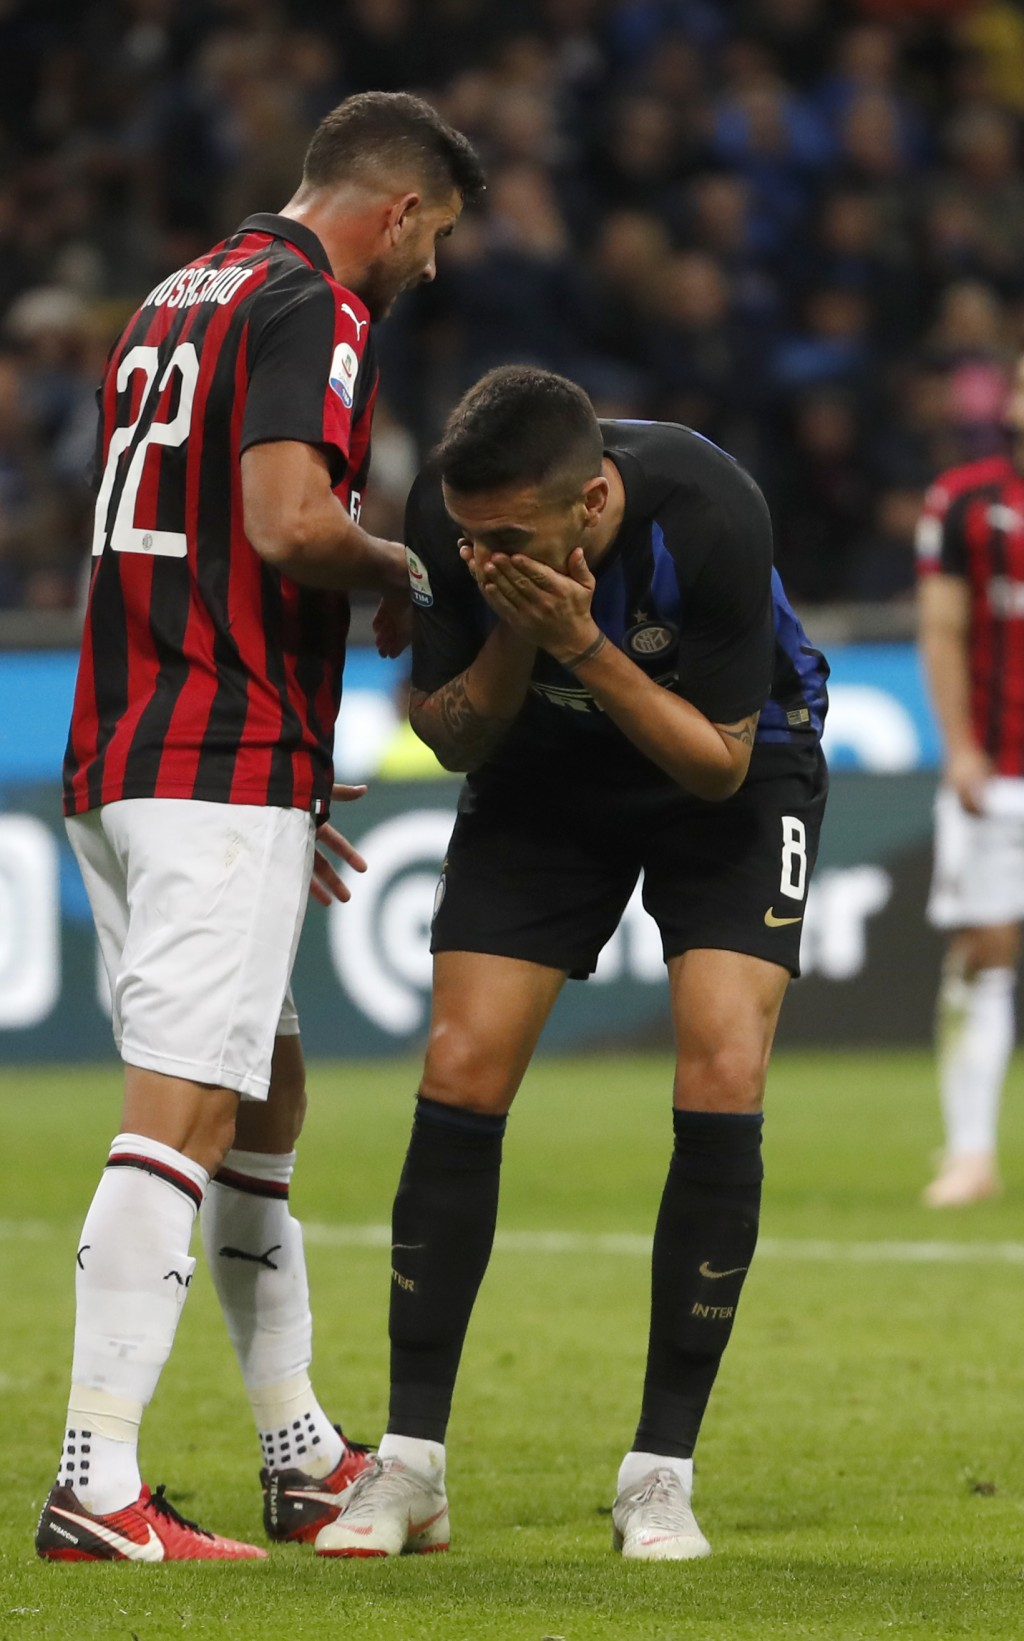 Inter Milan's Matias Vecino reacts after missing a scoring chance during the Serie A soccer match between Inter Milan and AC Milan at the San Siro Sta...